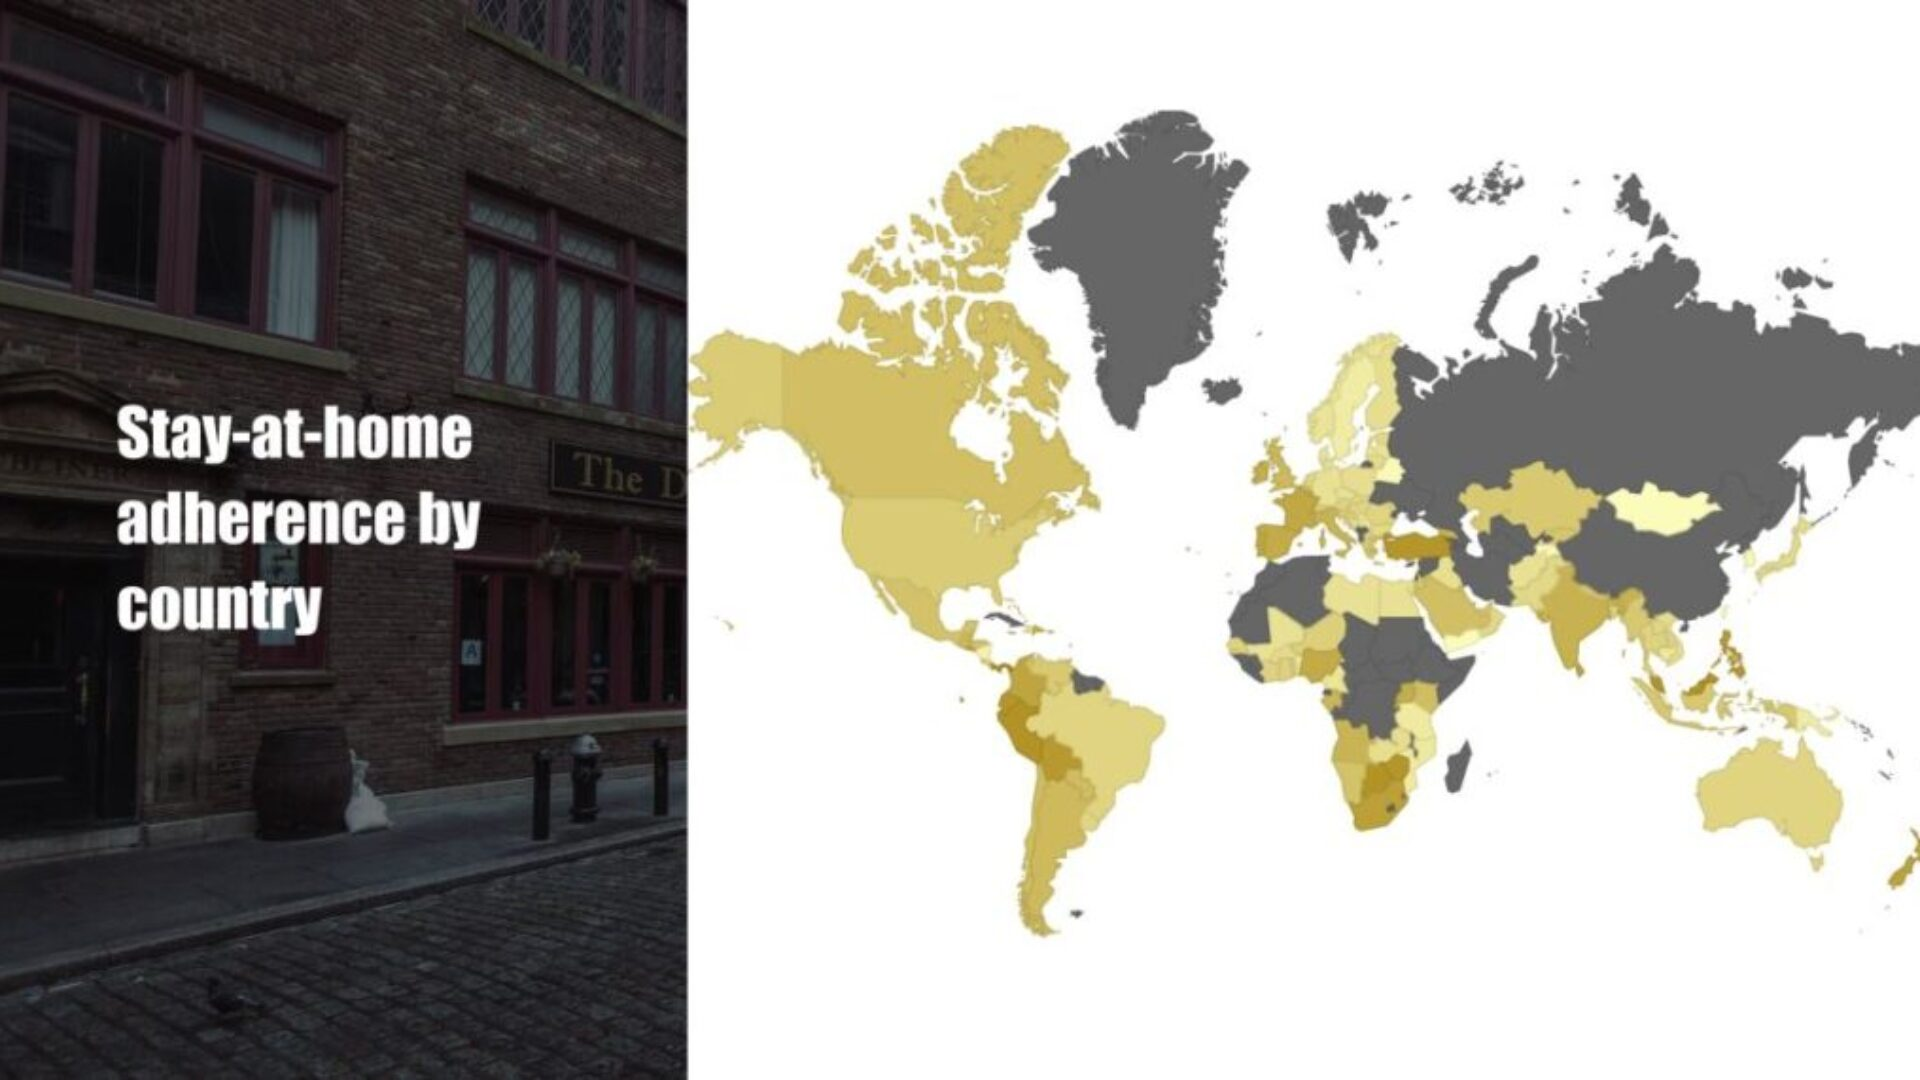 Stay At Home Adherence by Country